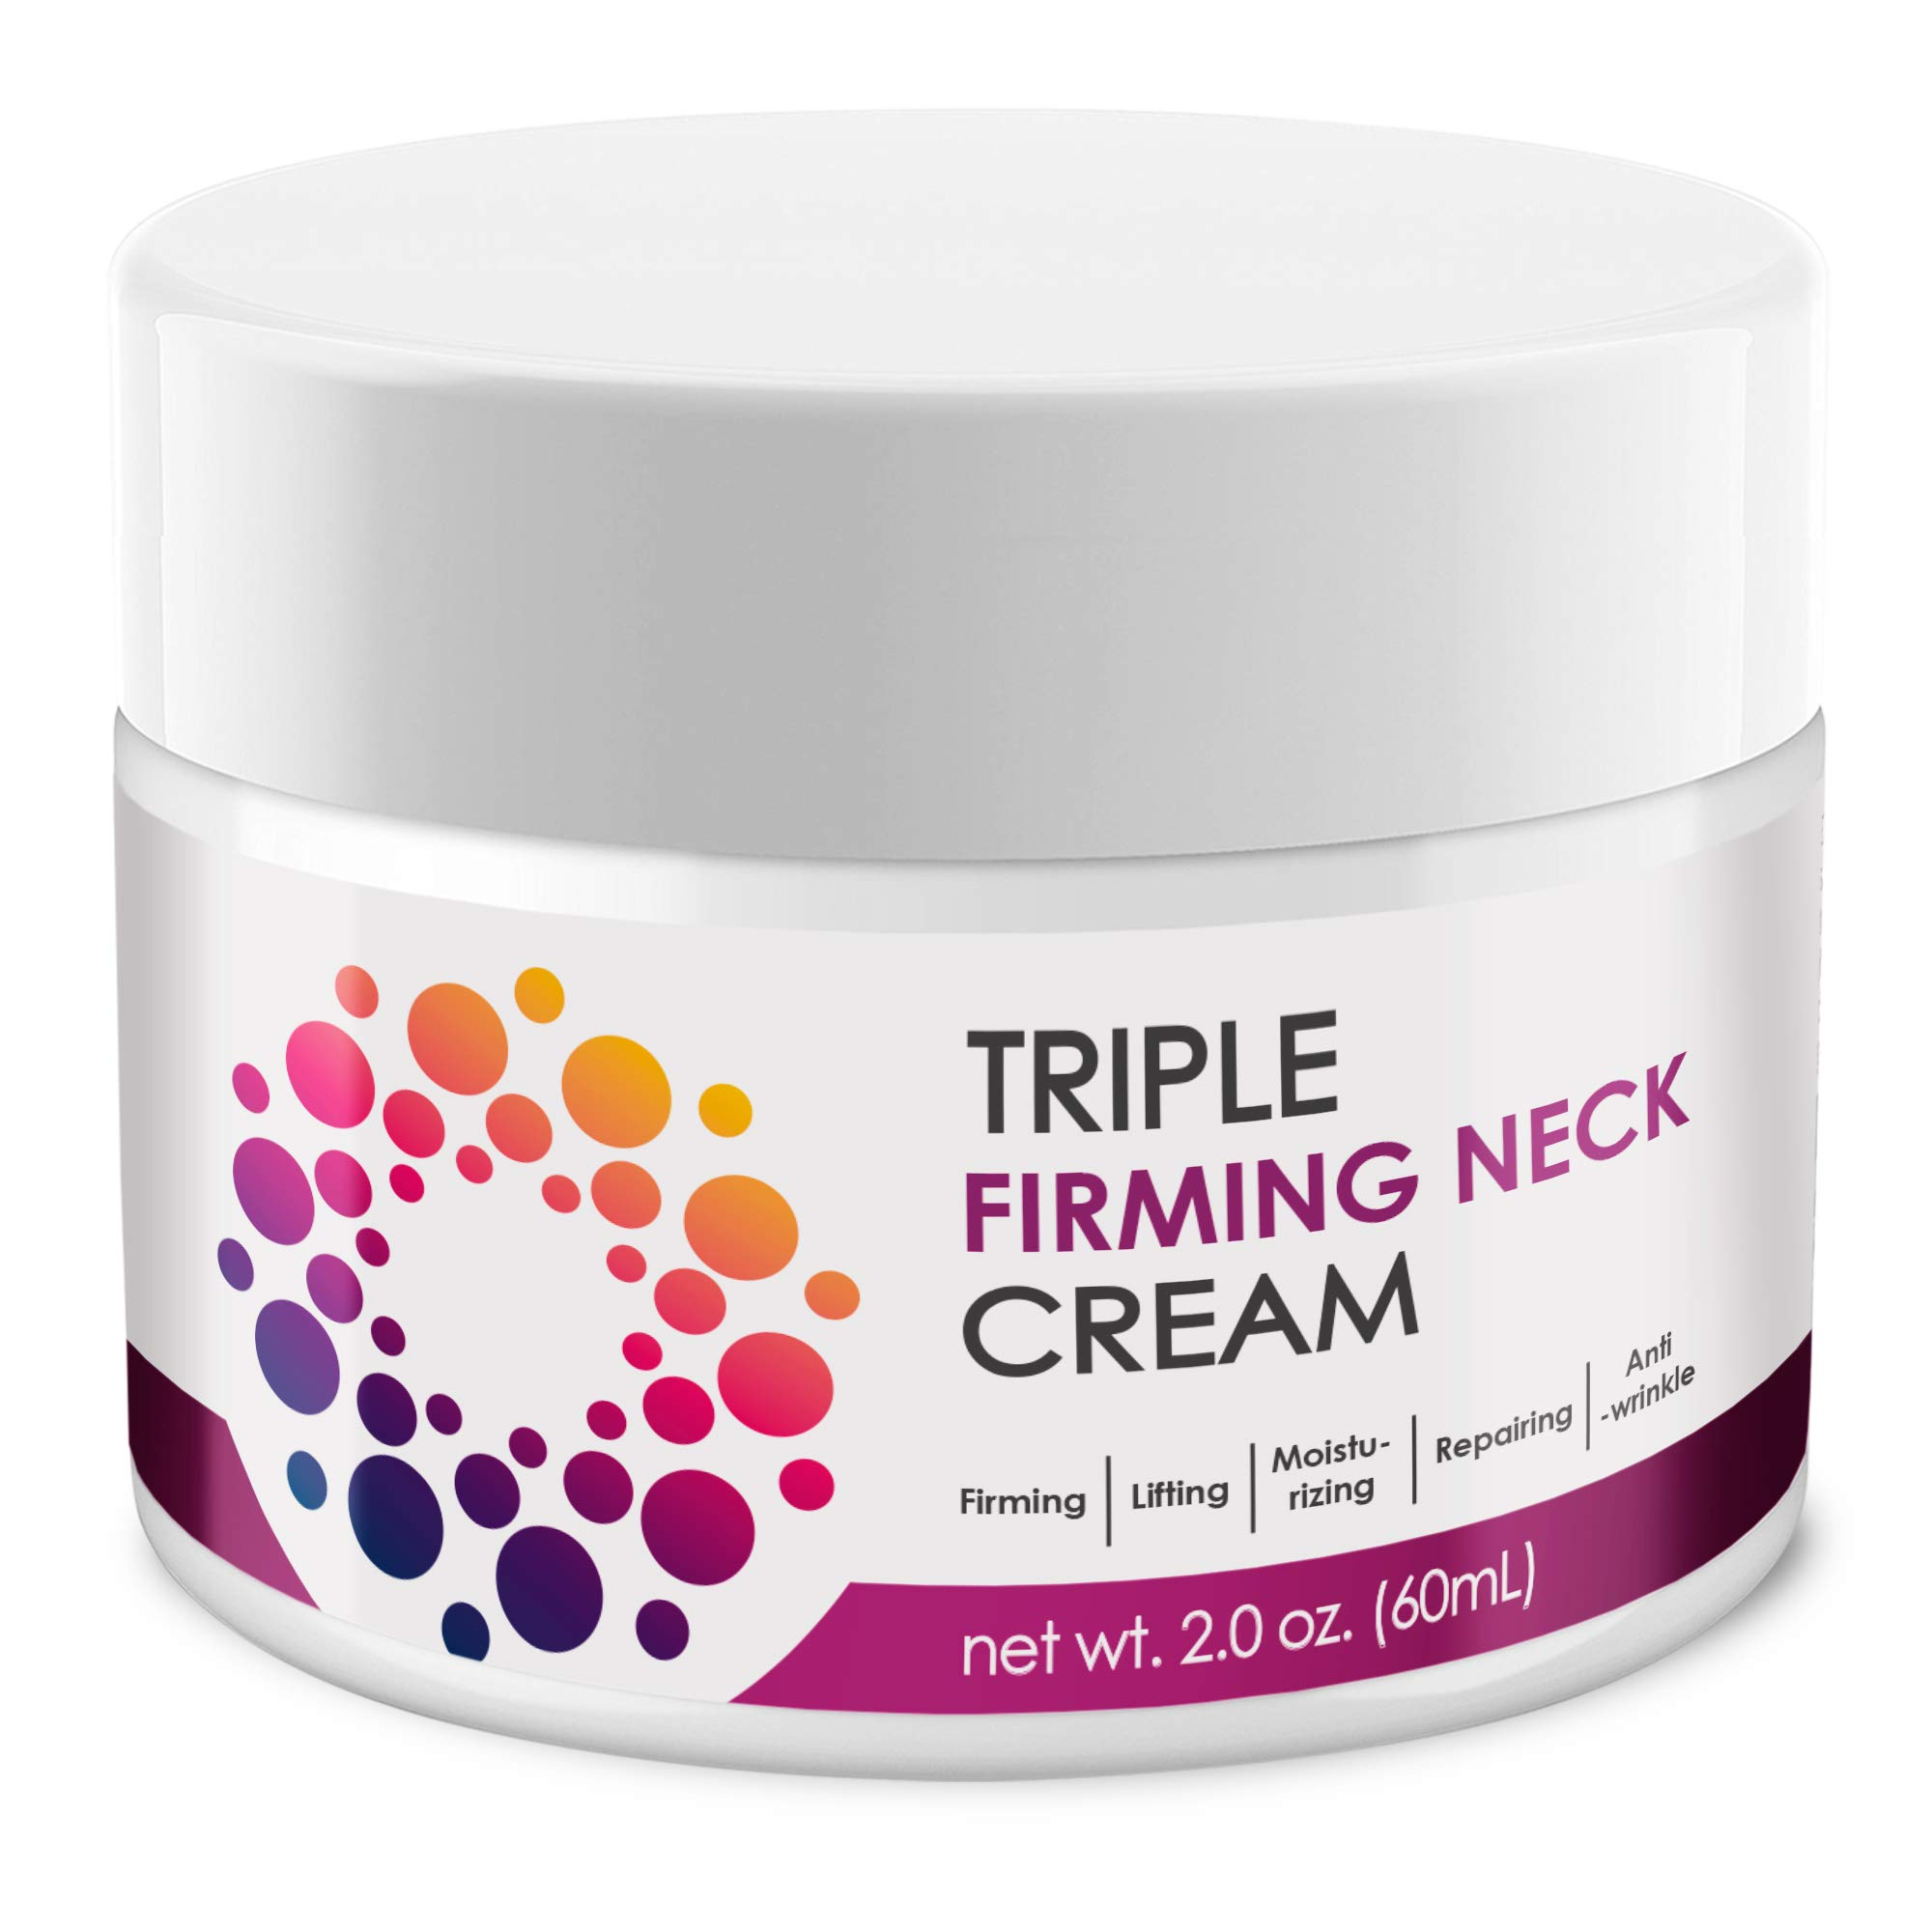 ACTIVSCIENCE Neck Firming Cream, Anti Aging Moisturizer for Neck & Décolleté, Double Chin Reducer, Skin Tightening Cream 2 fl oz. by ACTIVSCIENCE